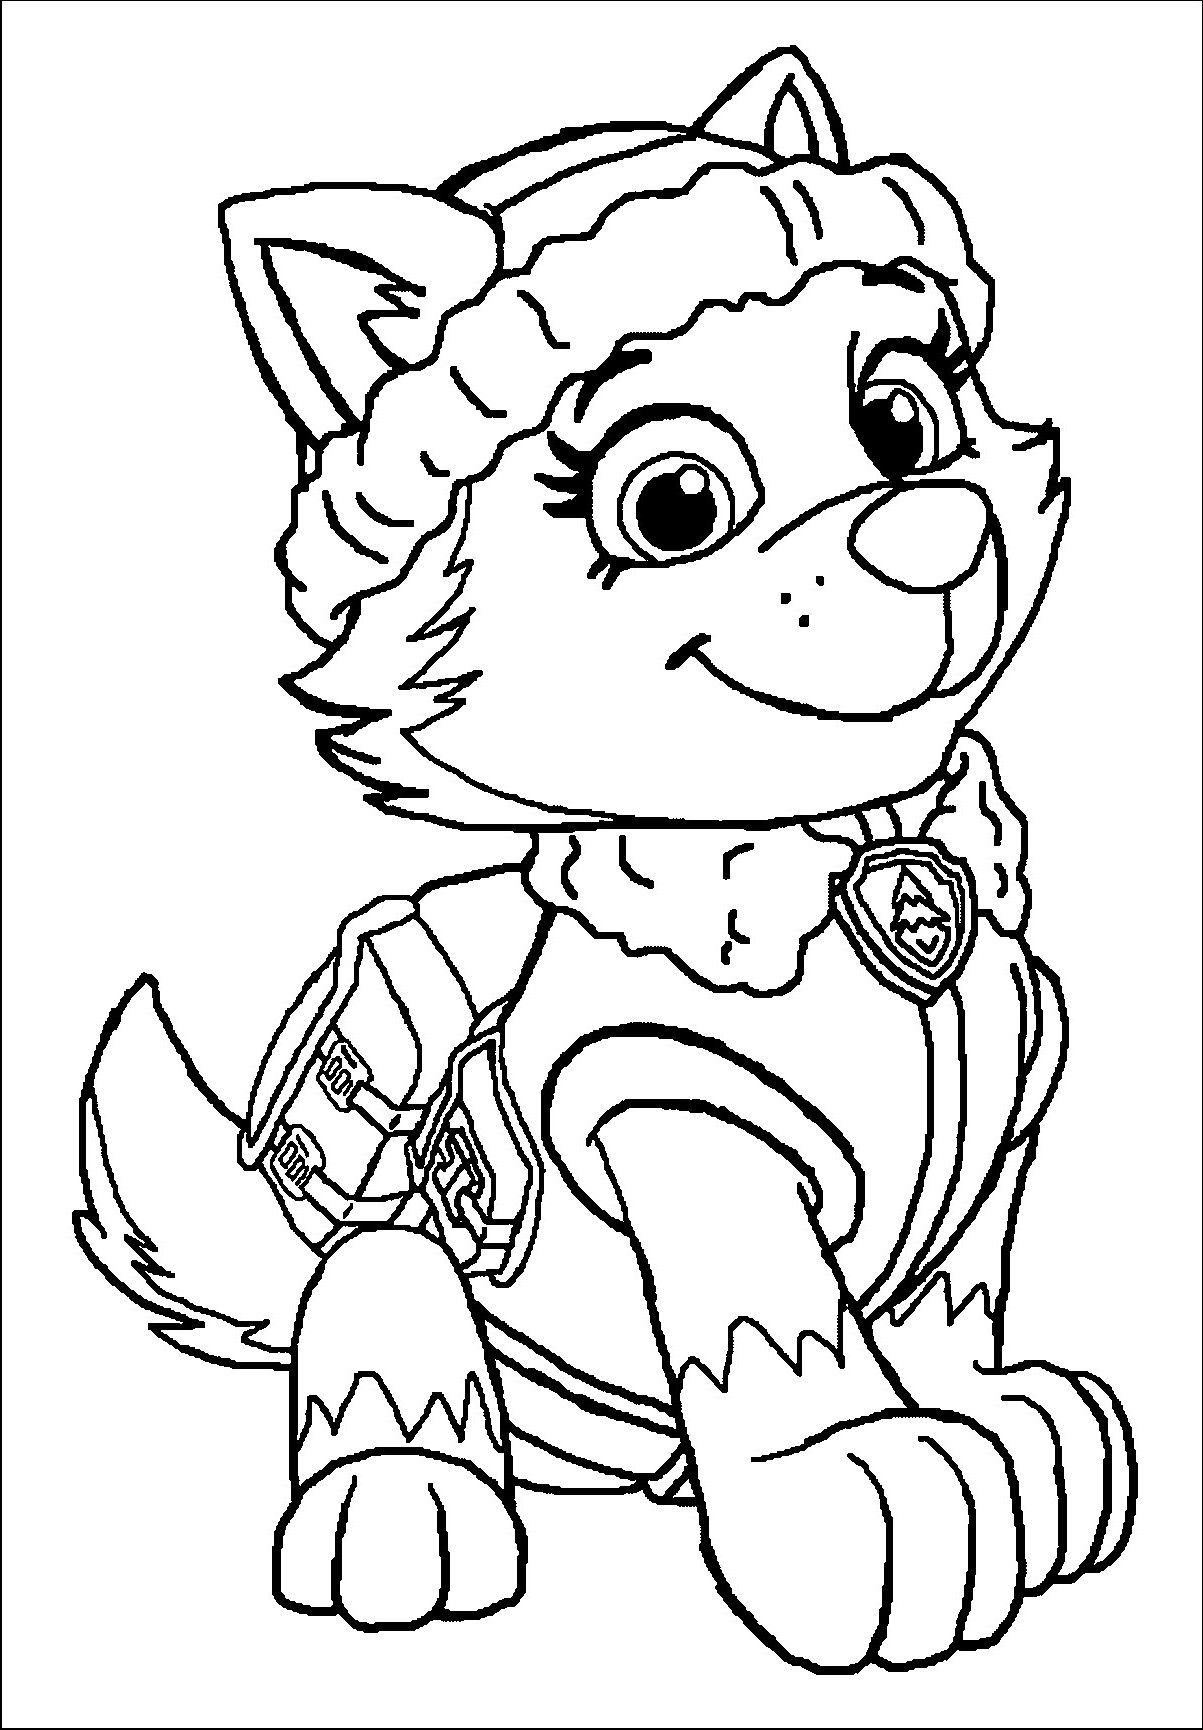 Marshall Paw Patrol Coloring Page - youngandtae.com | Paw ...